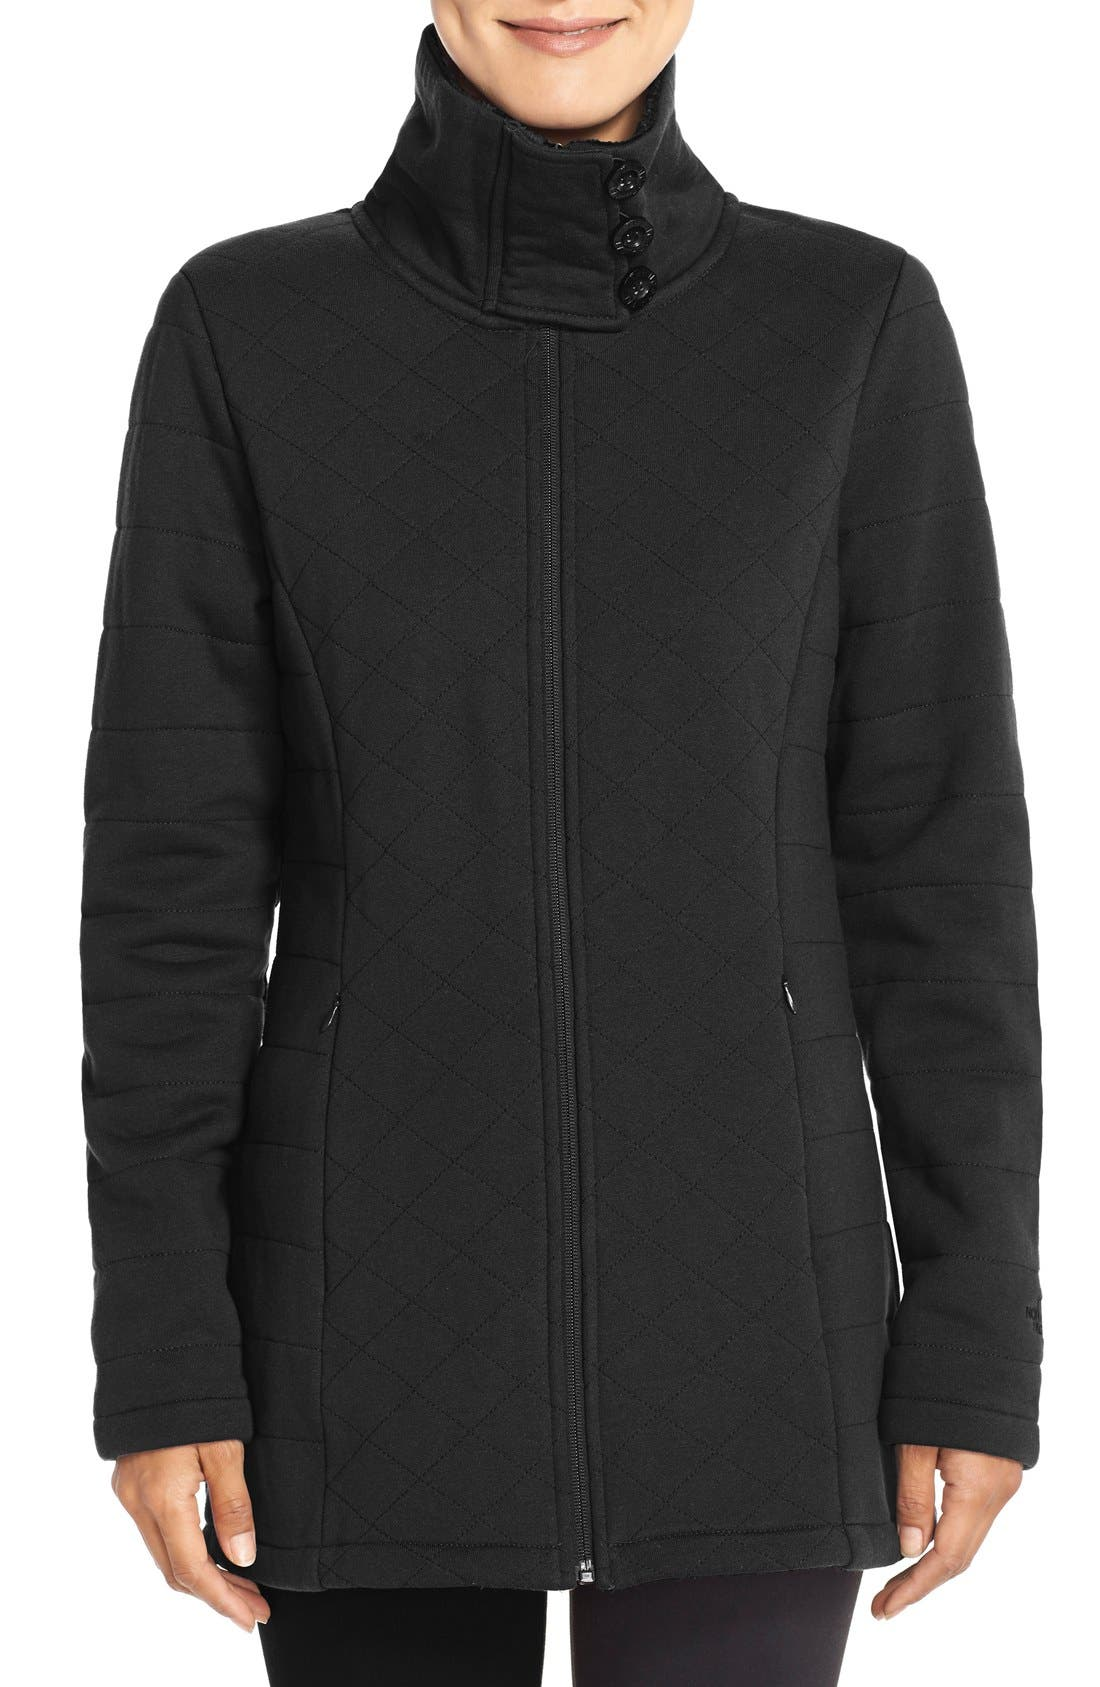 The North Face Caroluna Fleece Jacket Nordstrom